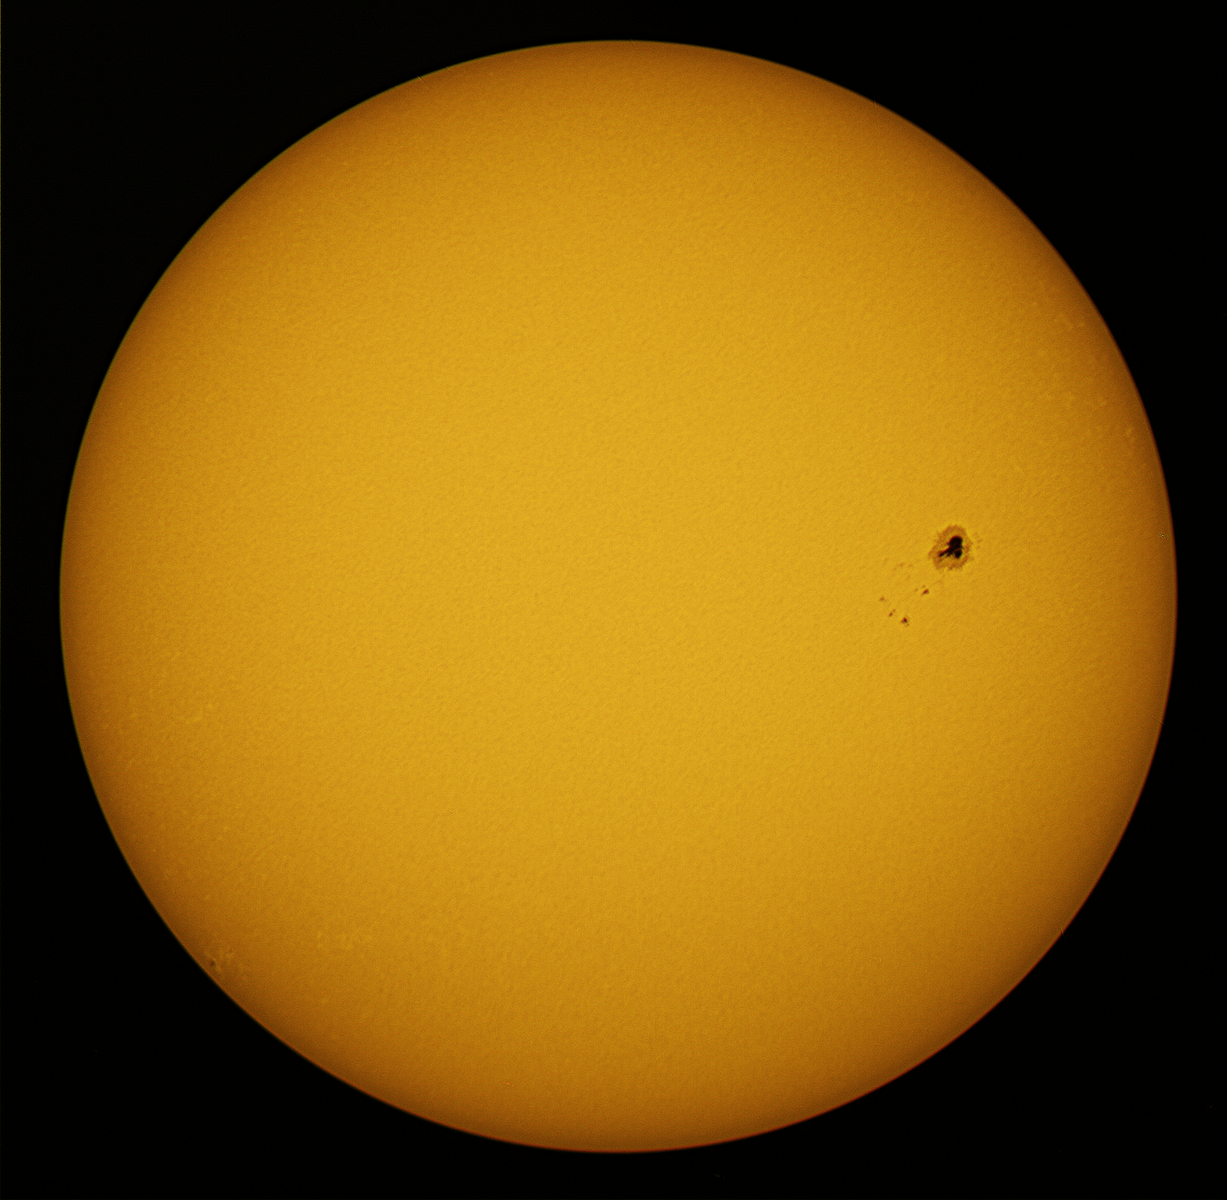 sol 16-4-16-10.30.the monster.